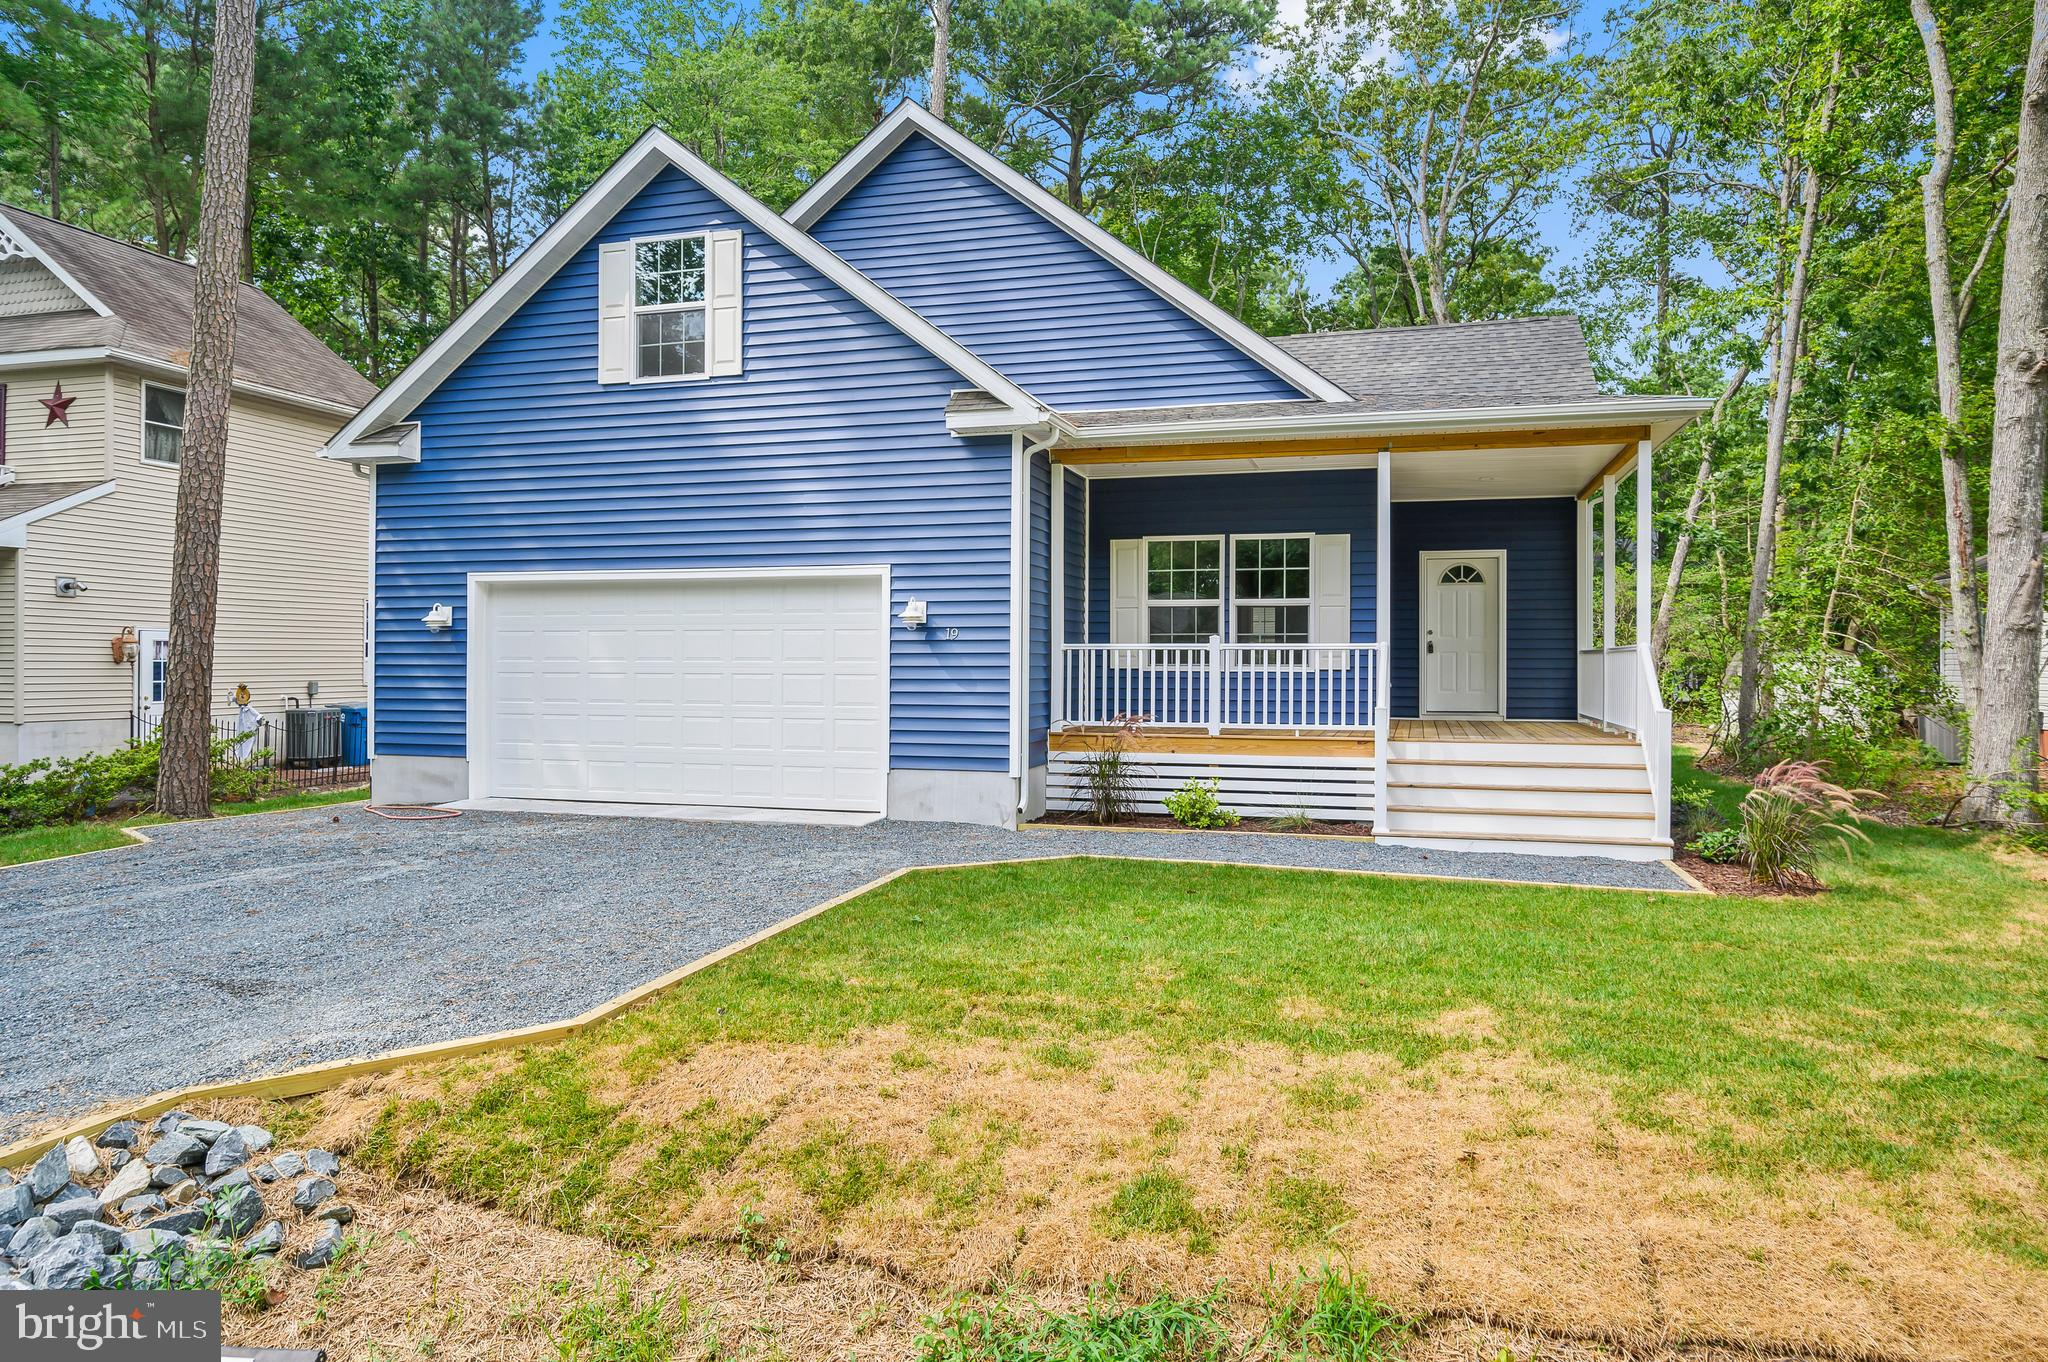 """Brand new construction in amenity rich and conveniently located Ocean Pines. TO BE BUILT, this 4 bed/3 full bath home has an expected finish date exoected September 2020.   Take a right at the four way stop in South Ocean Pines to head toward this home.  From the ground up, this home is dialed in. Starting with five courses of block foundation, up through the architectural shingles used for the roof. As you walk inside you will happily notice Pella windows and doors, Pergo flooring throughout, 42 """" white kitchen cabinets, granite countertops, stainless appliances, recessed LED lighting and carpet in the bedrooms. First floor master, as well as a second floor master, while the 3rd and 4th bedroom share the final full bath. Washer and Dryer are included as well as a 50 gallon electric water heater. Driveway will be stone and the garage will have a 6 panel door. Please call listing agent for more details!"""